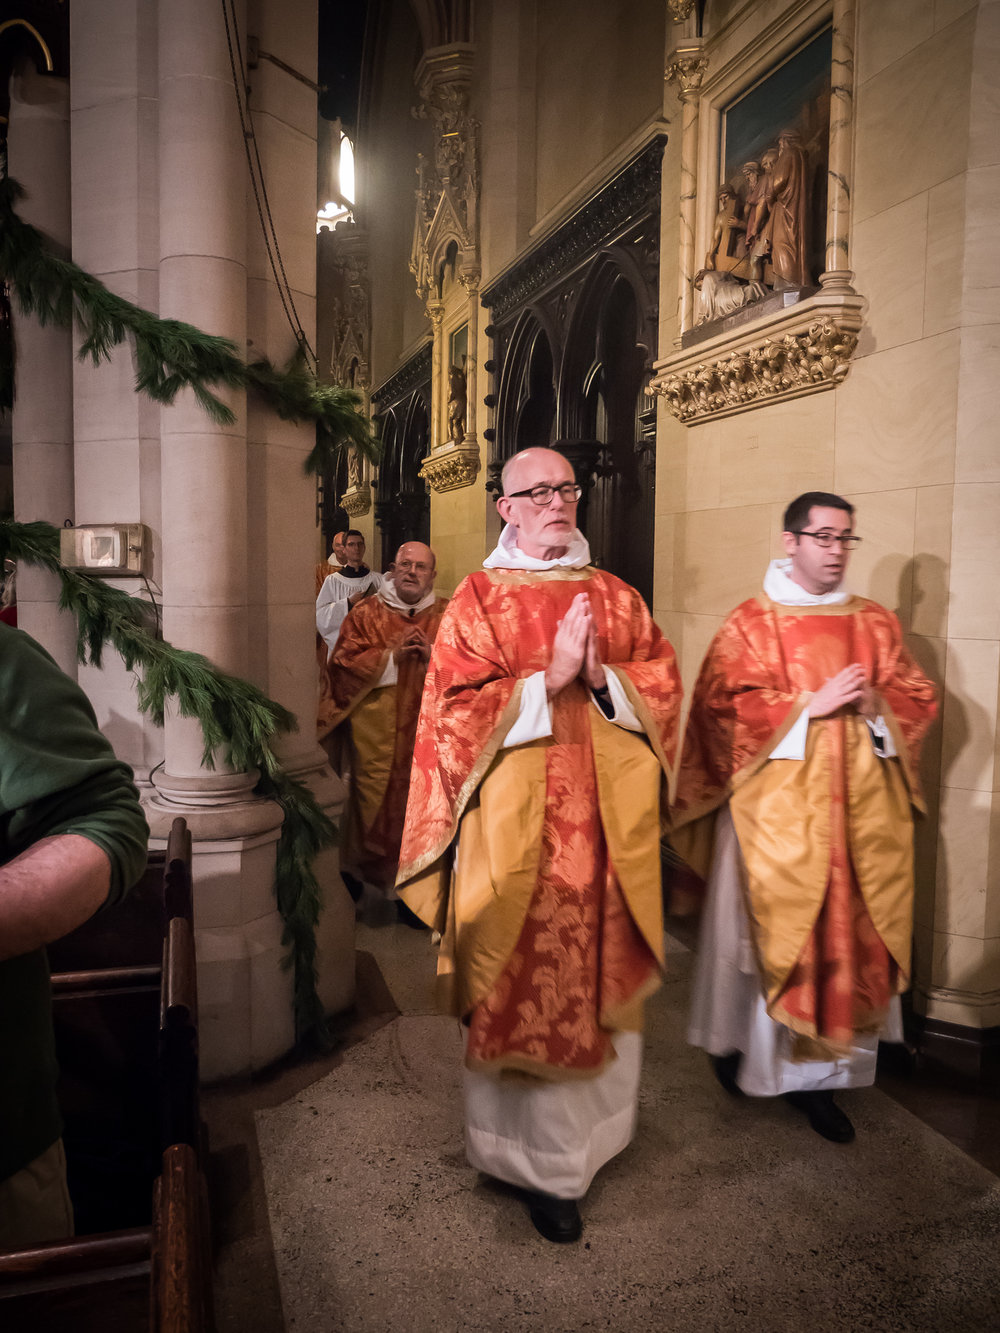 Father Paul Burrows and Father Matt Jacobson in procession at the Solemn Mass on Christmas Eve Photo by Ricardo Gomez